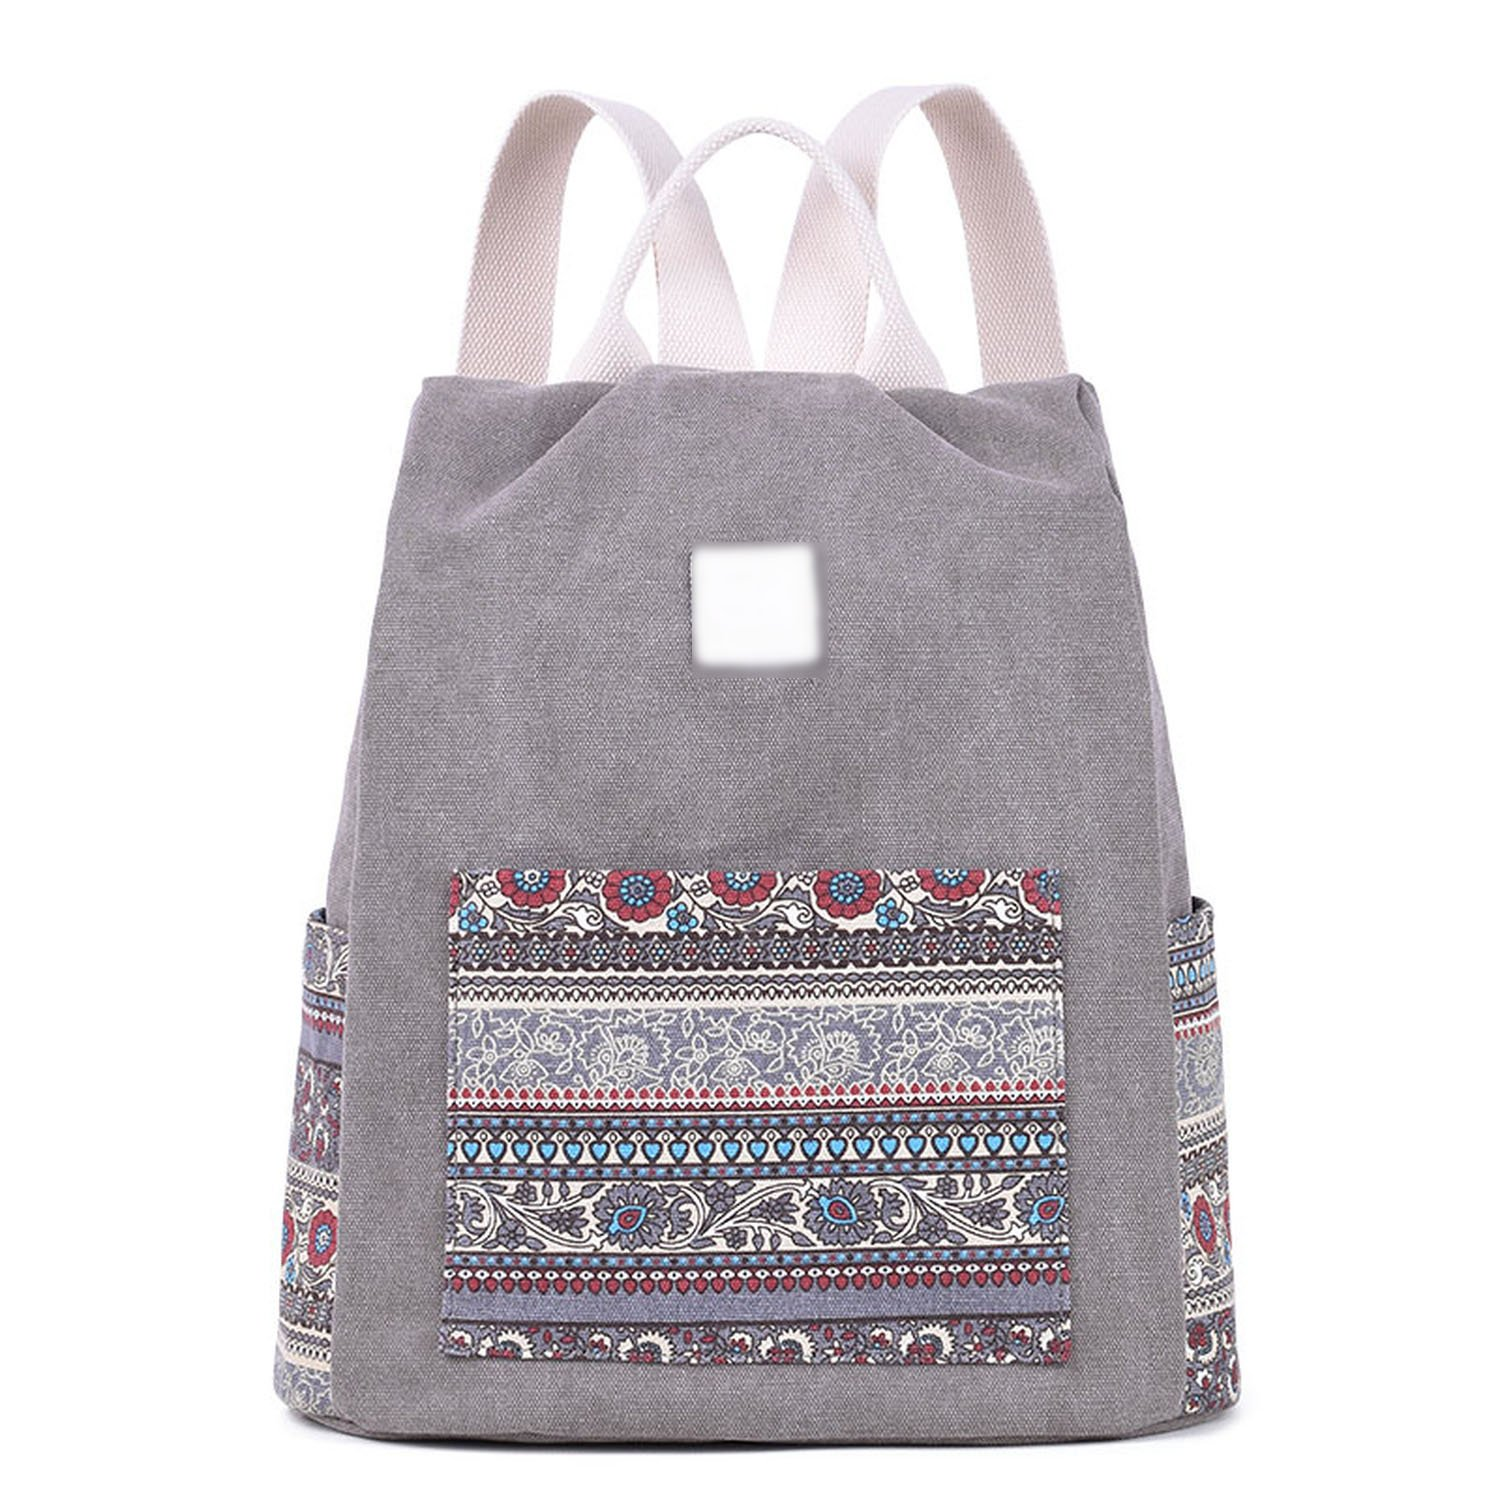 Perfues WomenS Canvas Backpack Floral School Bookbag Travel Small Backpacks Casual Daypack Bags,Light Gray,China